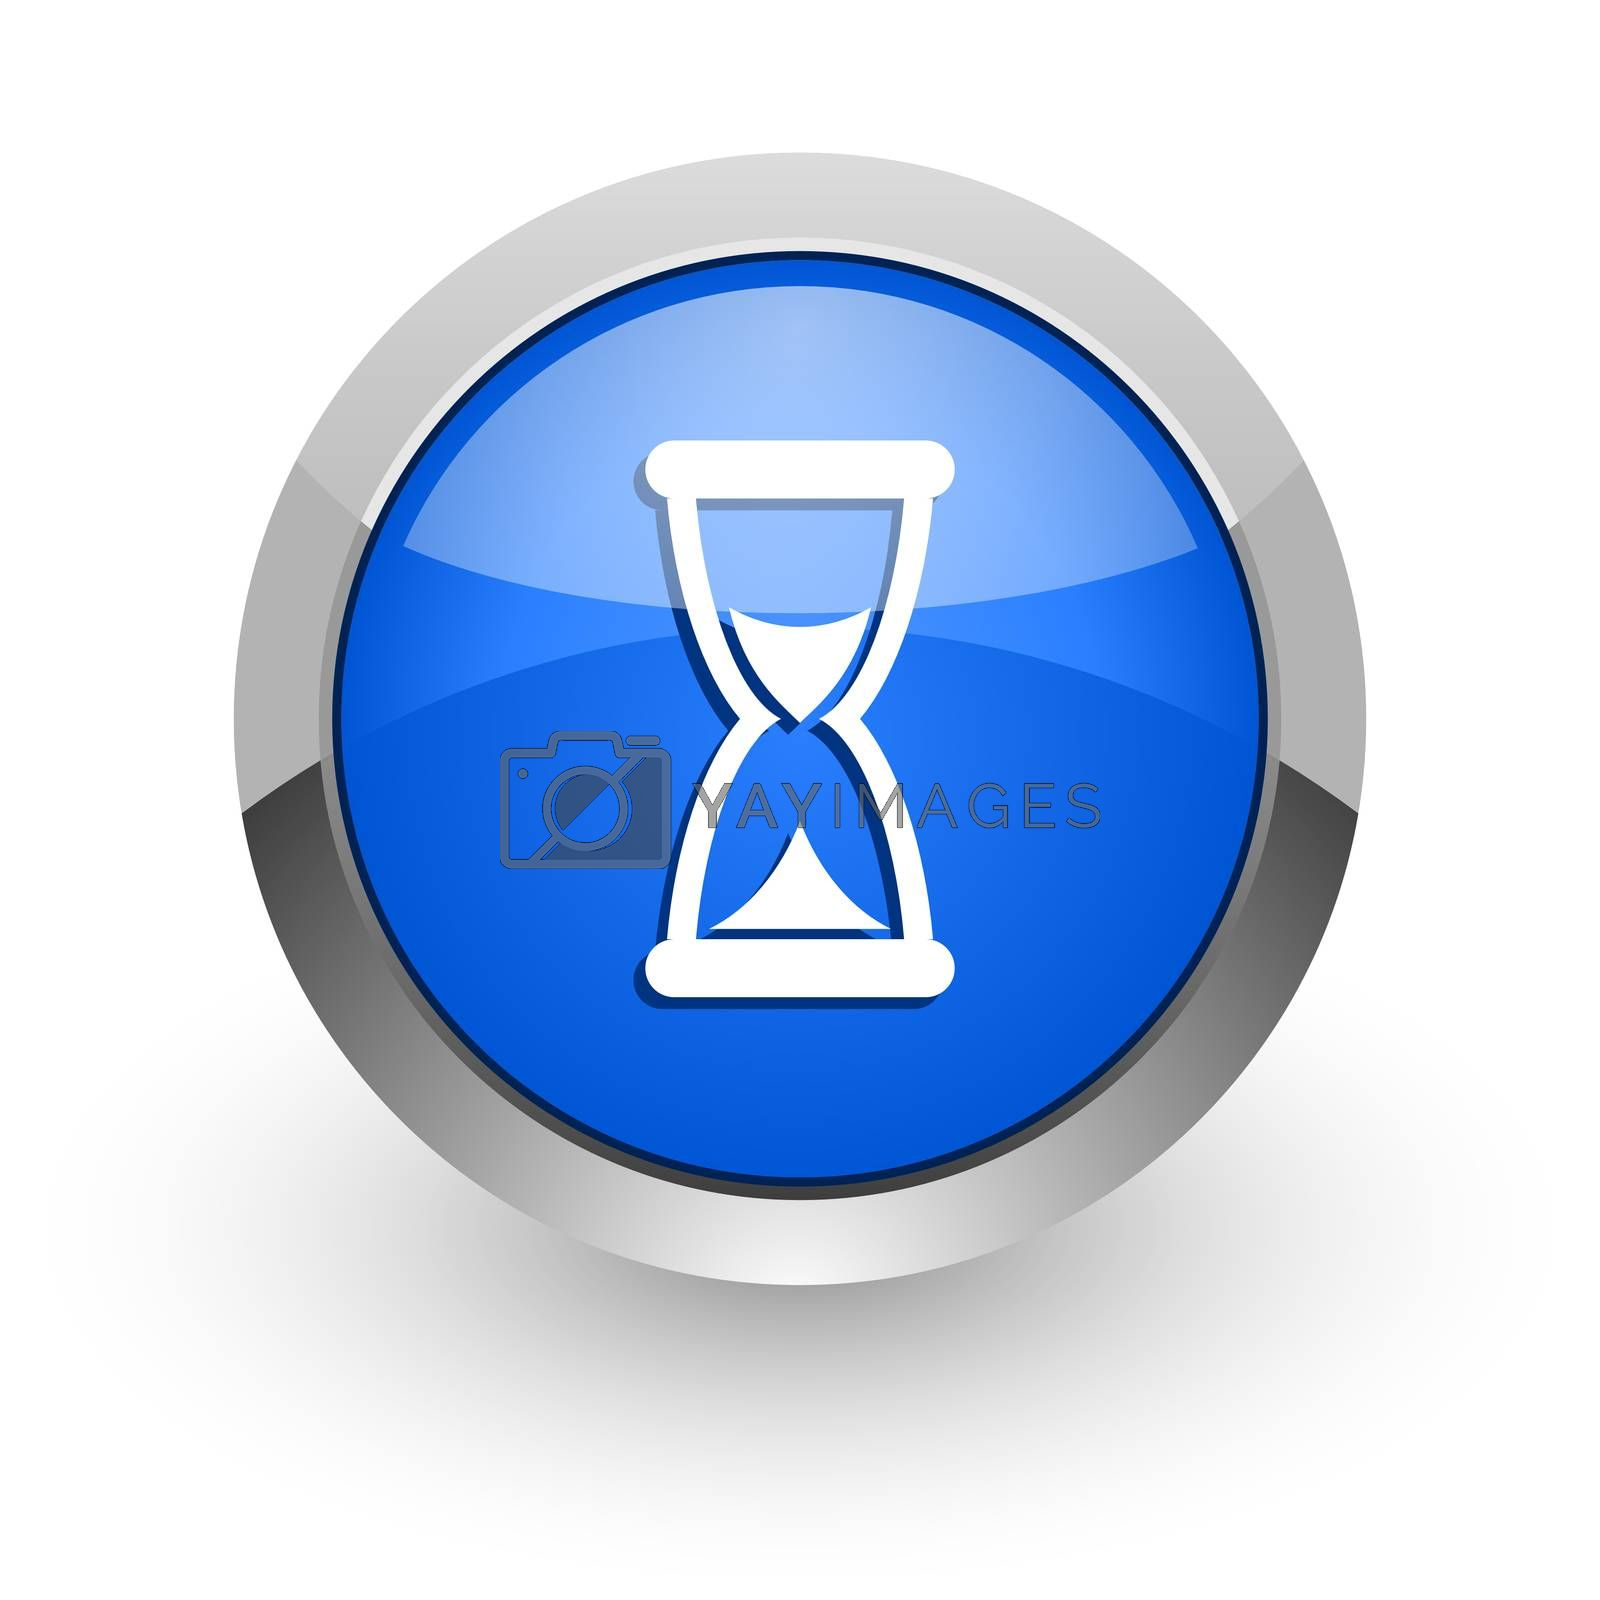 Royalty free image of time blue glossy web icon by alexwhite